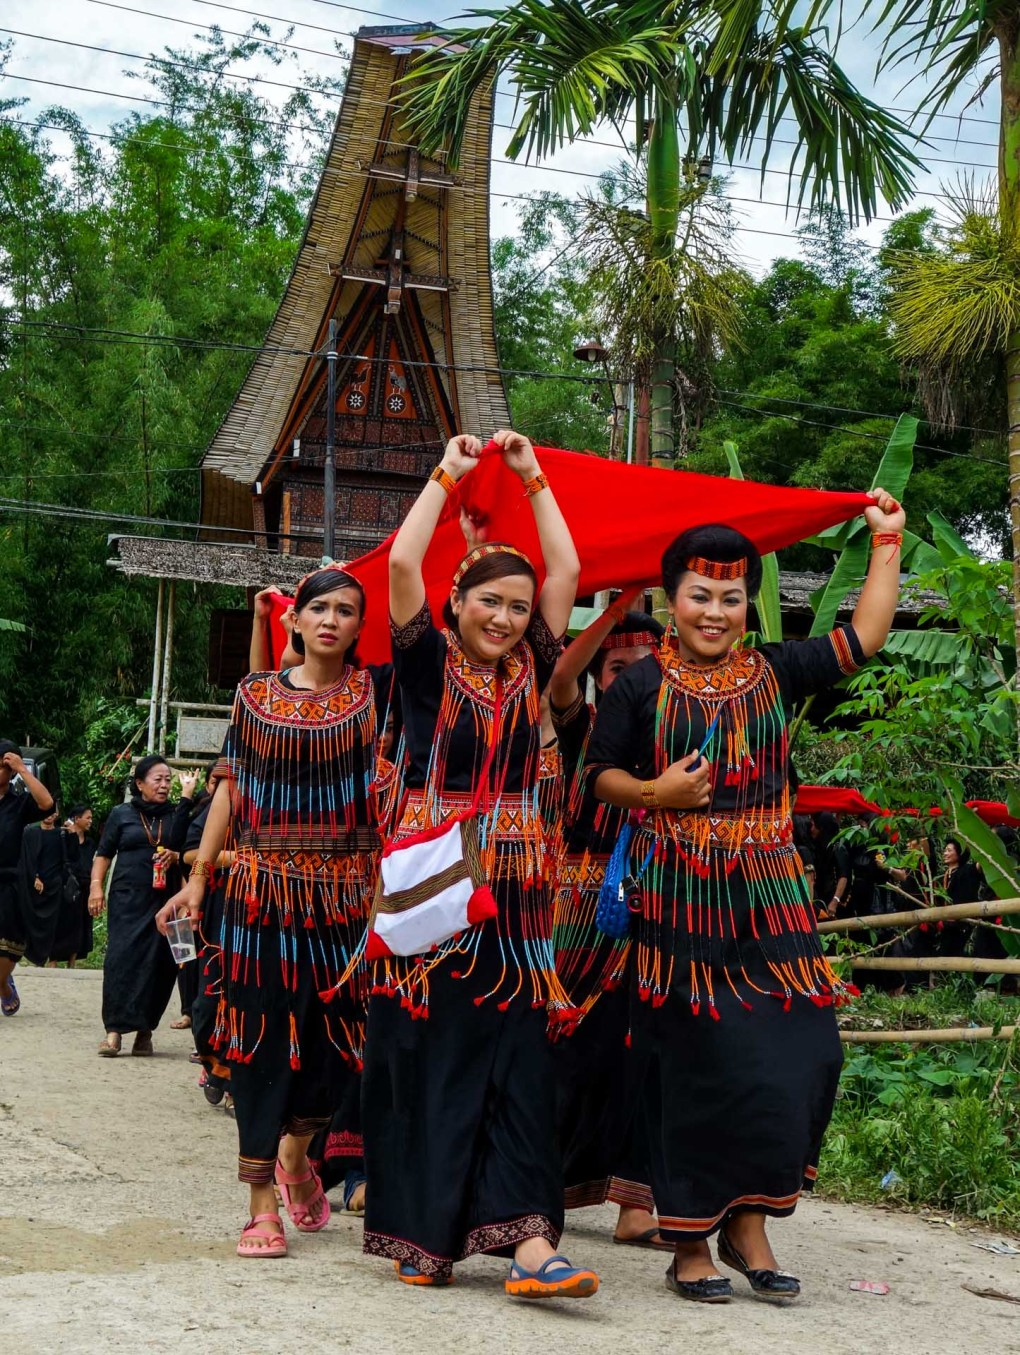 Tana Toraja Funeral Ceremony - granddaughters in traditional clothing at coffin parade through the village Christian Jansen & Maria Düerkop